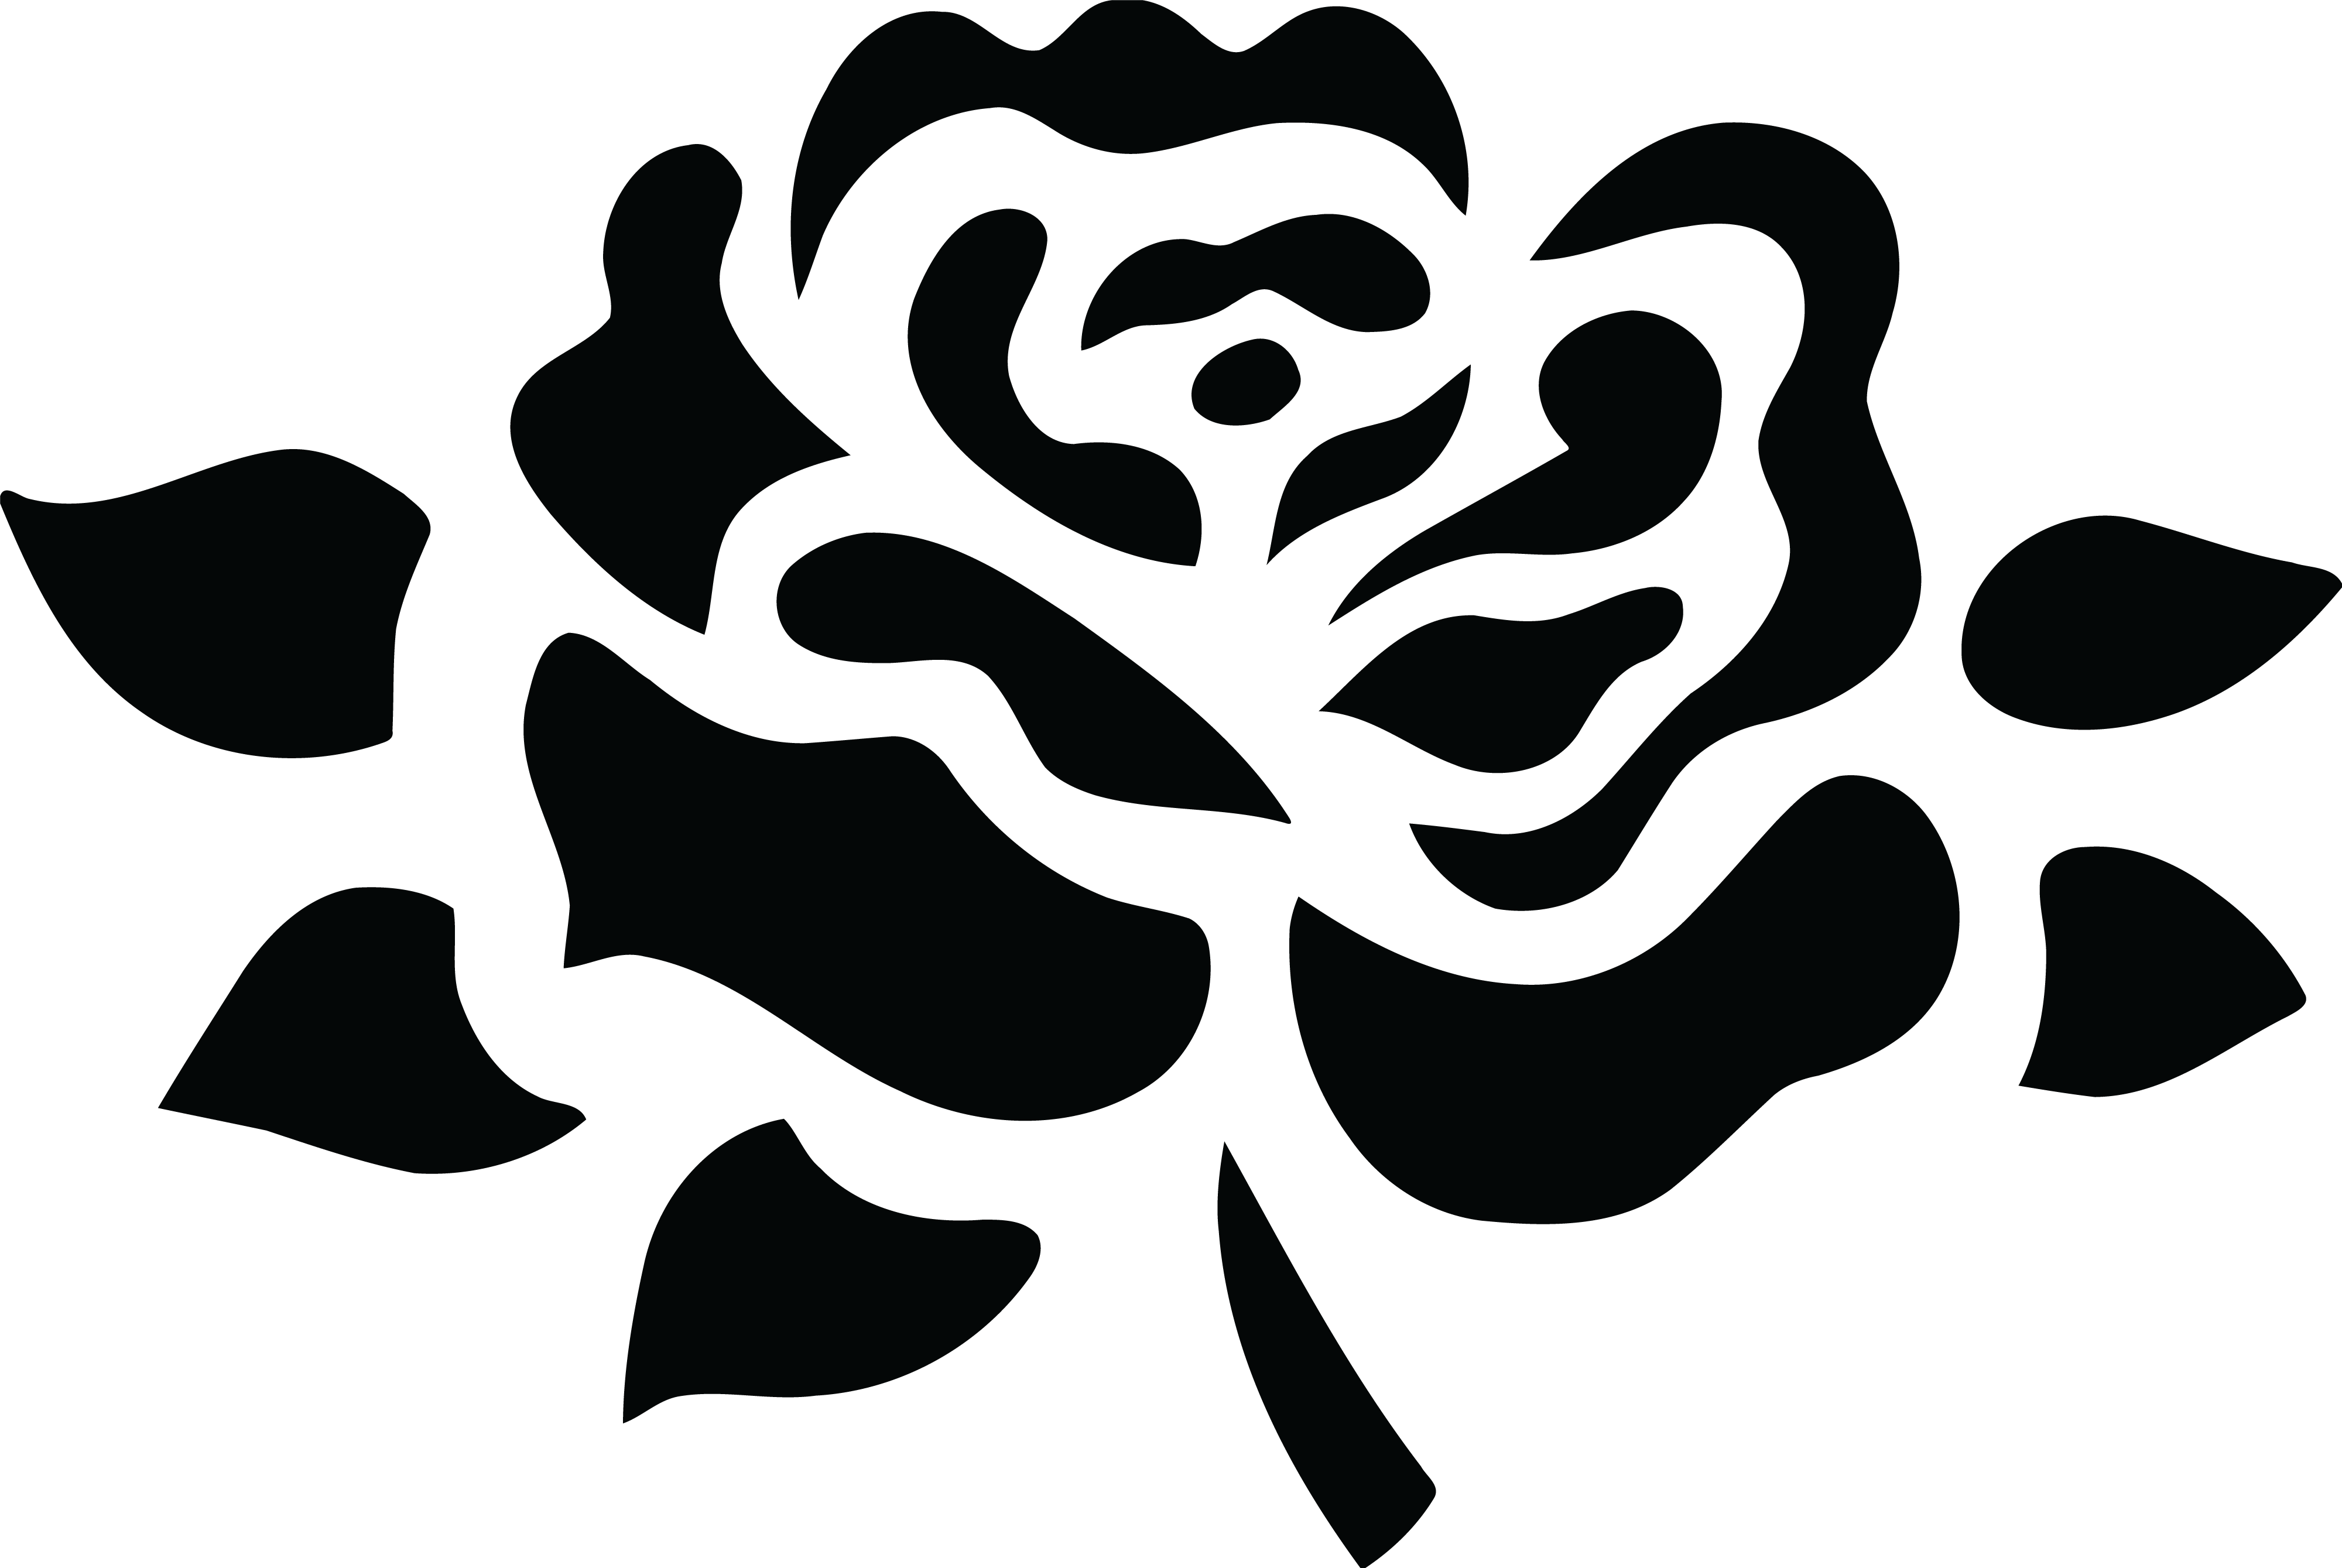 free clipart of a black and white fully bloomed rose rh free clipartof com rose border black and white clipart rose border black and white clipart